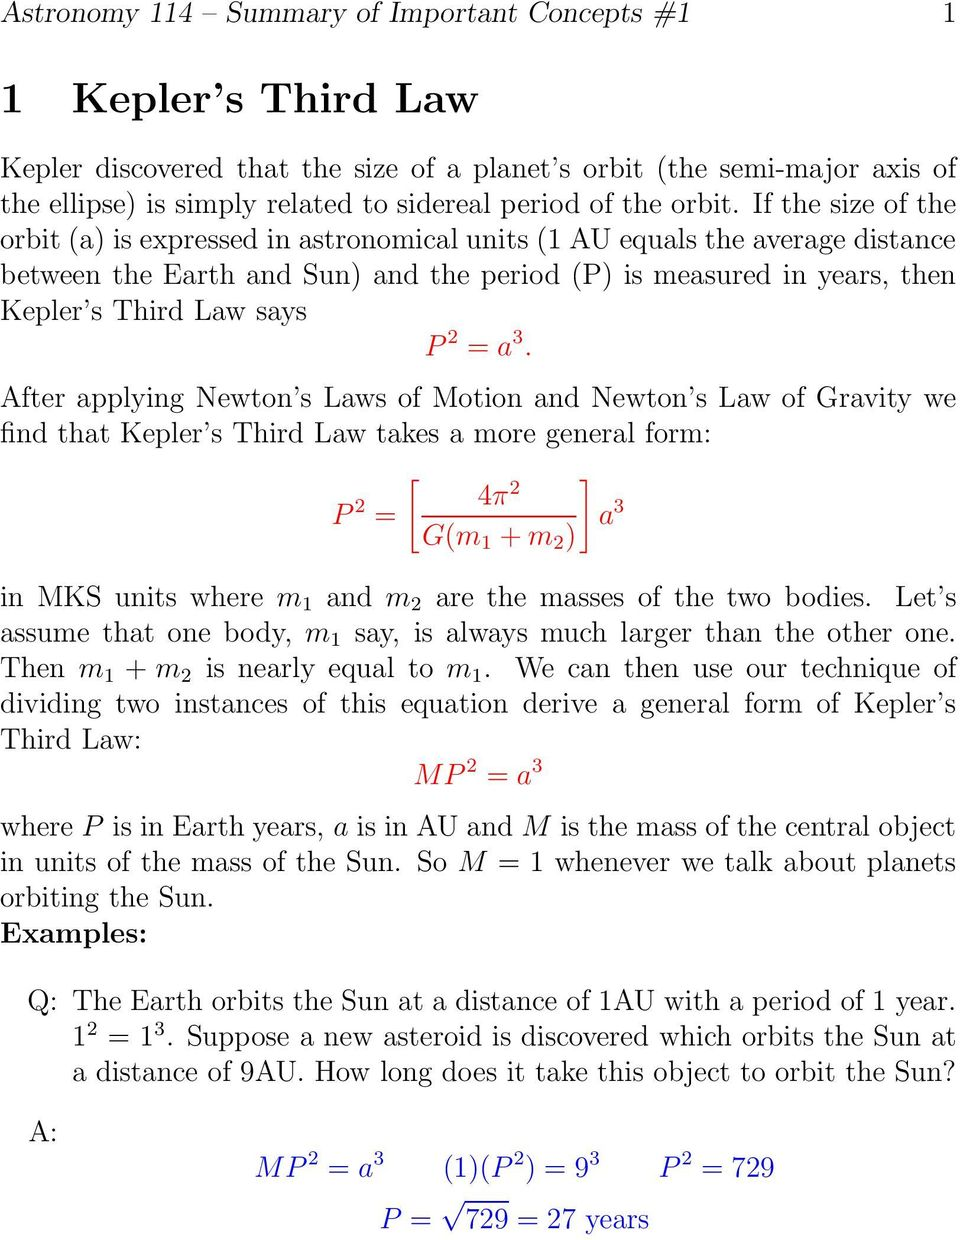 If the size of the orbit (a) is expressed in astronomical units (1 AU equals the average distance between the Earth and Sun) and the period (P) is measured in years, then Kepler s Third Law says P 2